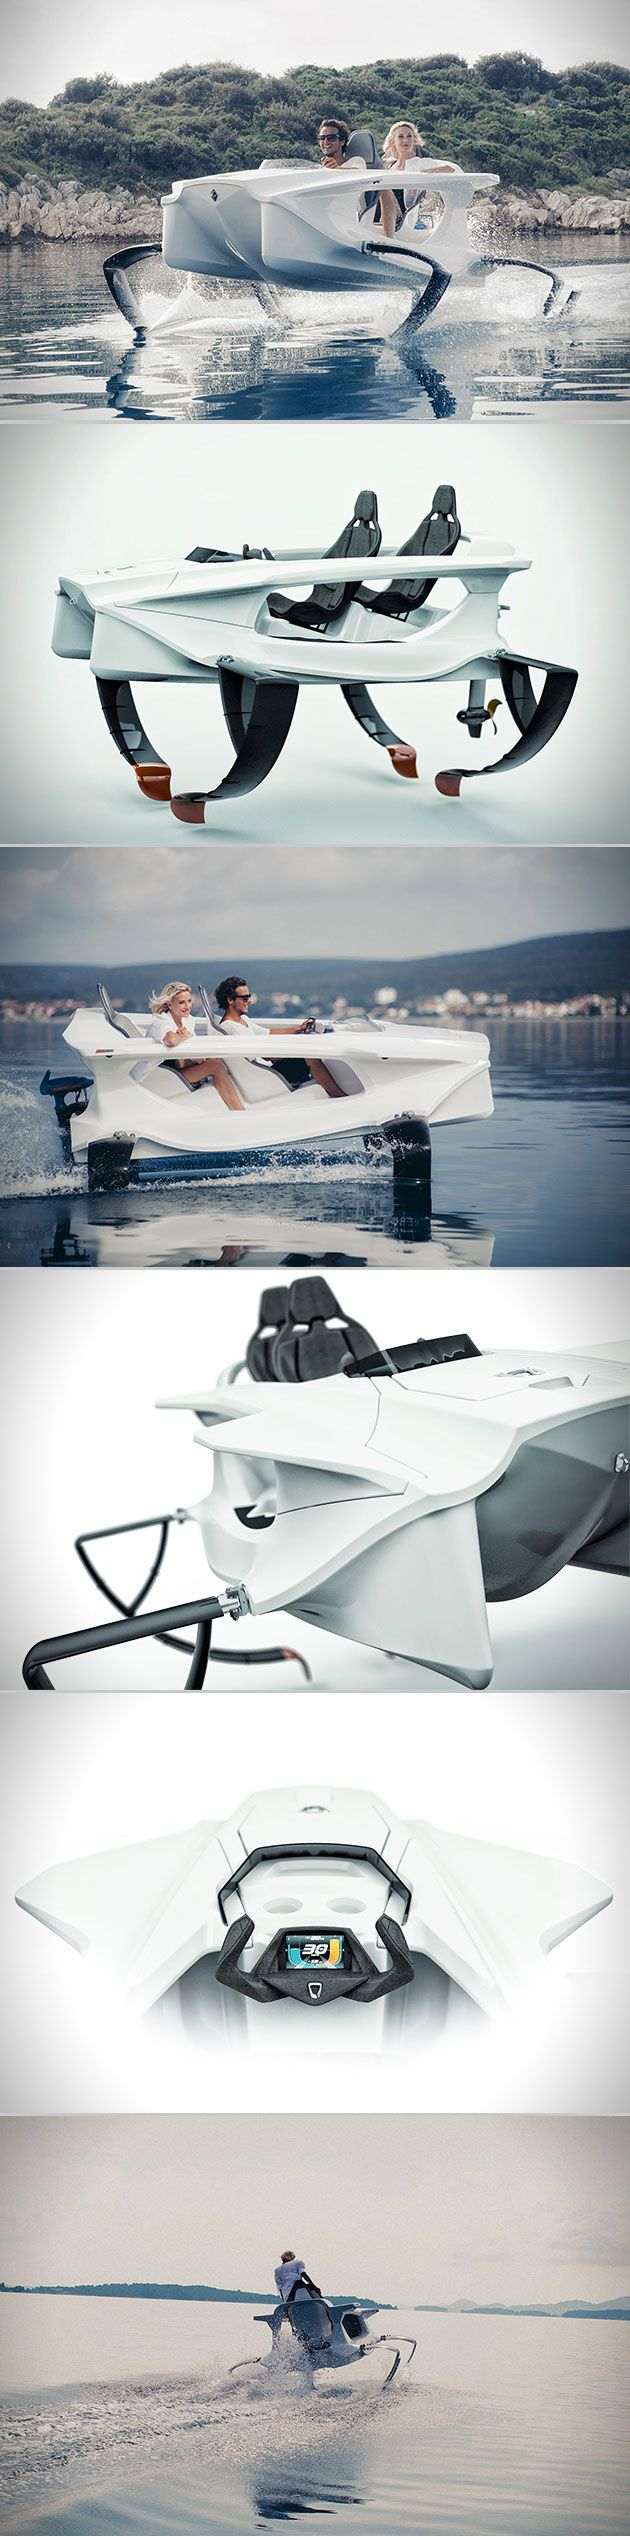 331 Best Boats Yachts Etc Images On Pinterest Ships Catamaran Hit Auta 2040 Car Electric Antenna Universal Fitting Quadrofoil Is A Full Personal Hydrofoil Uses C Foil Technology To Fly